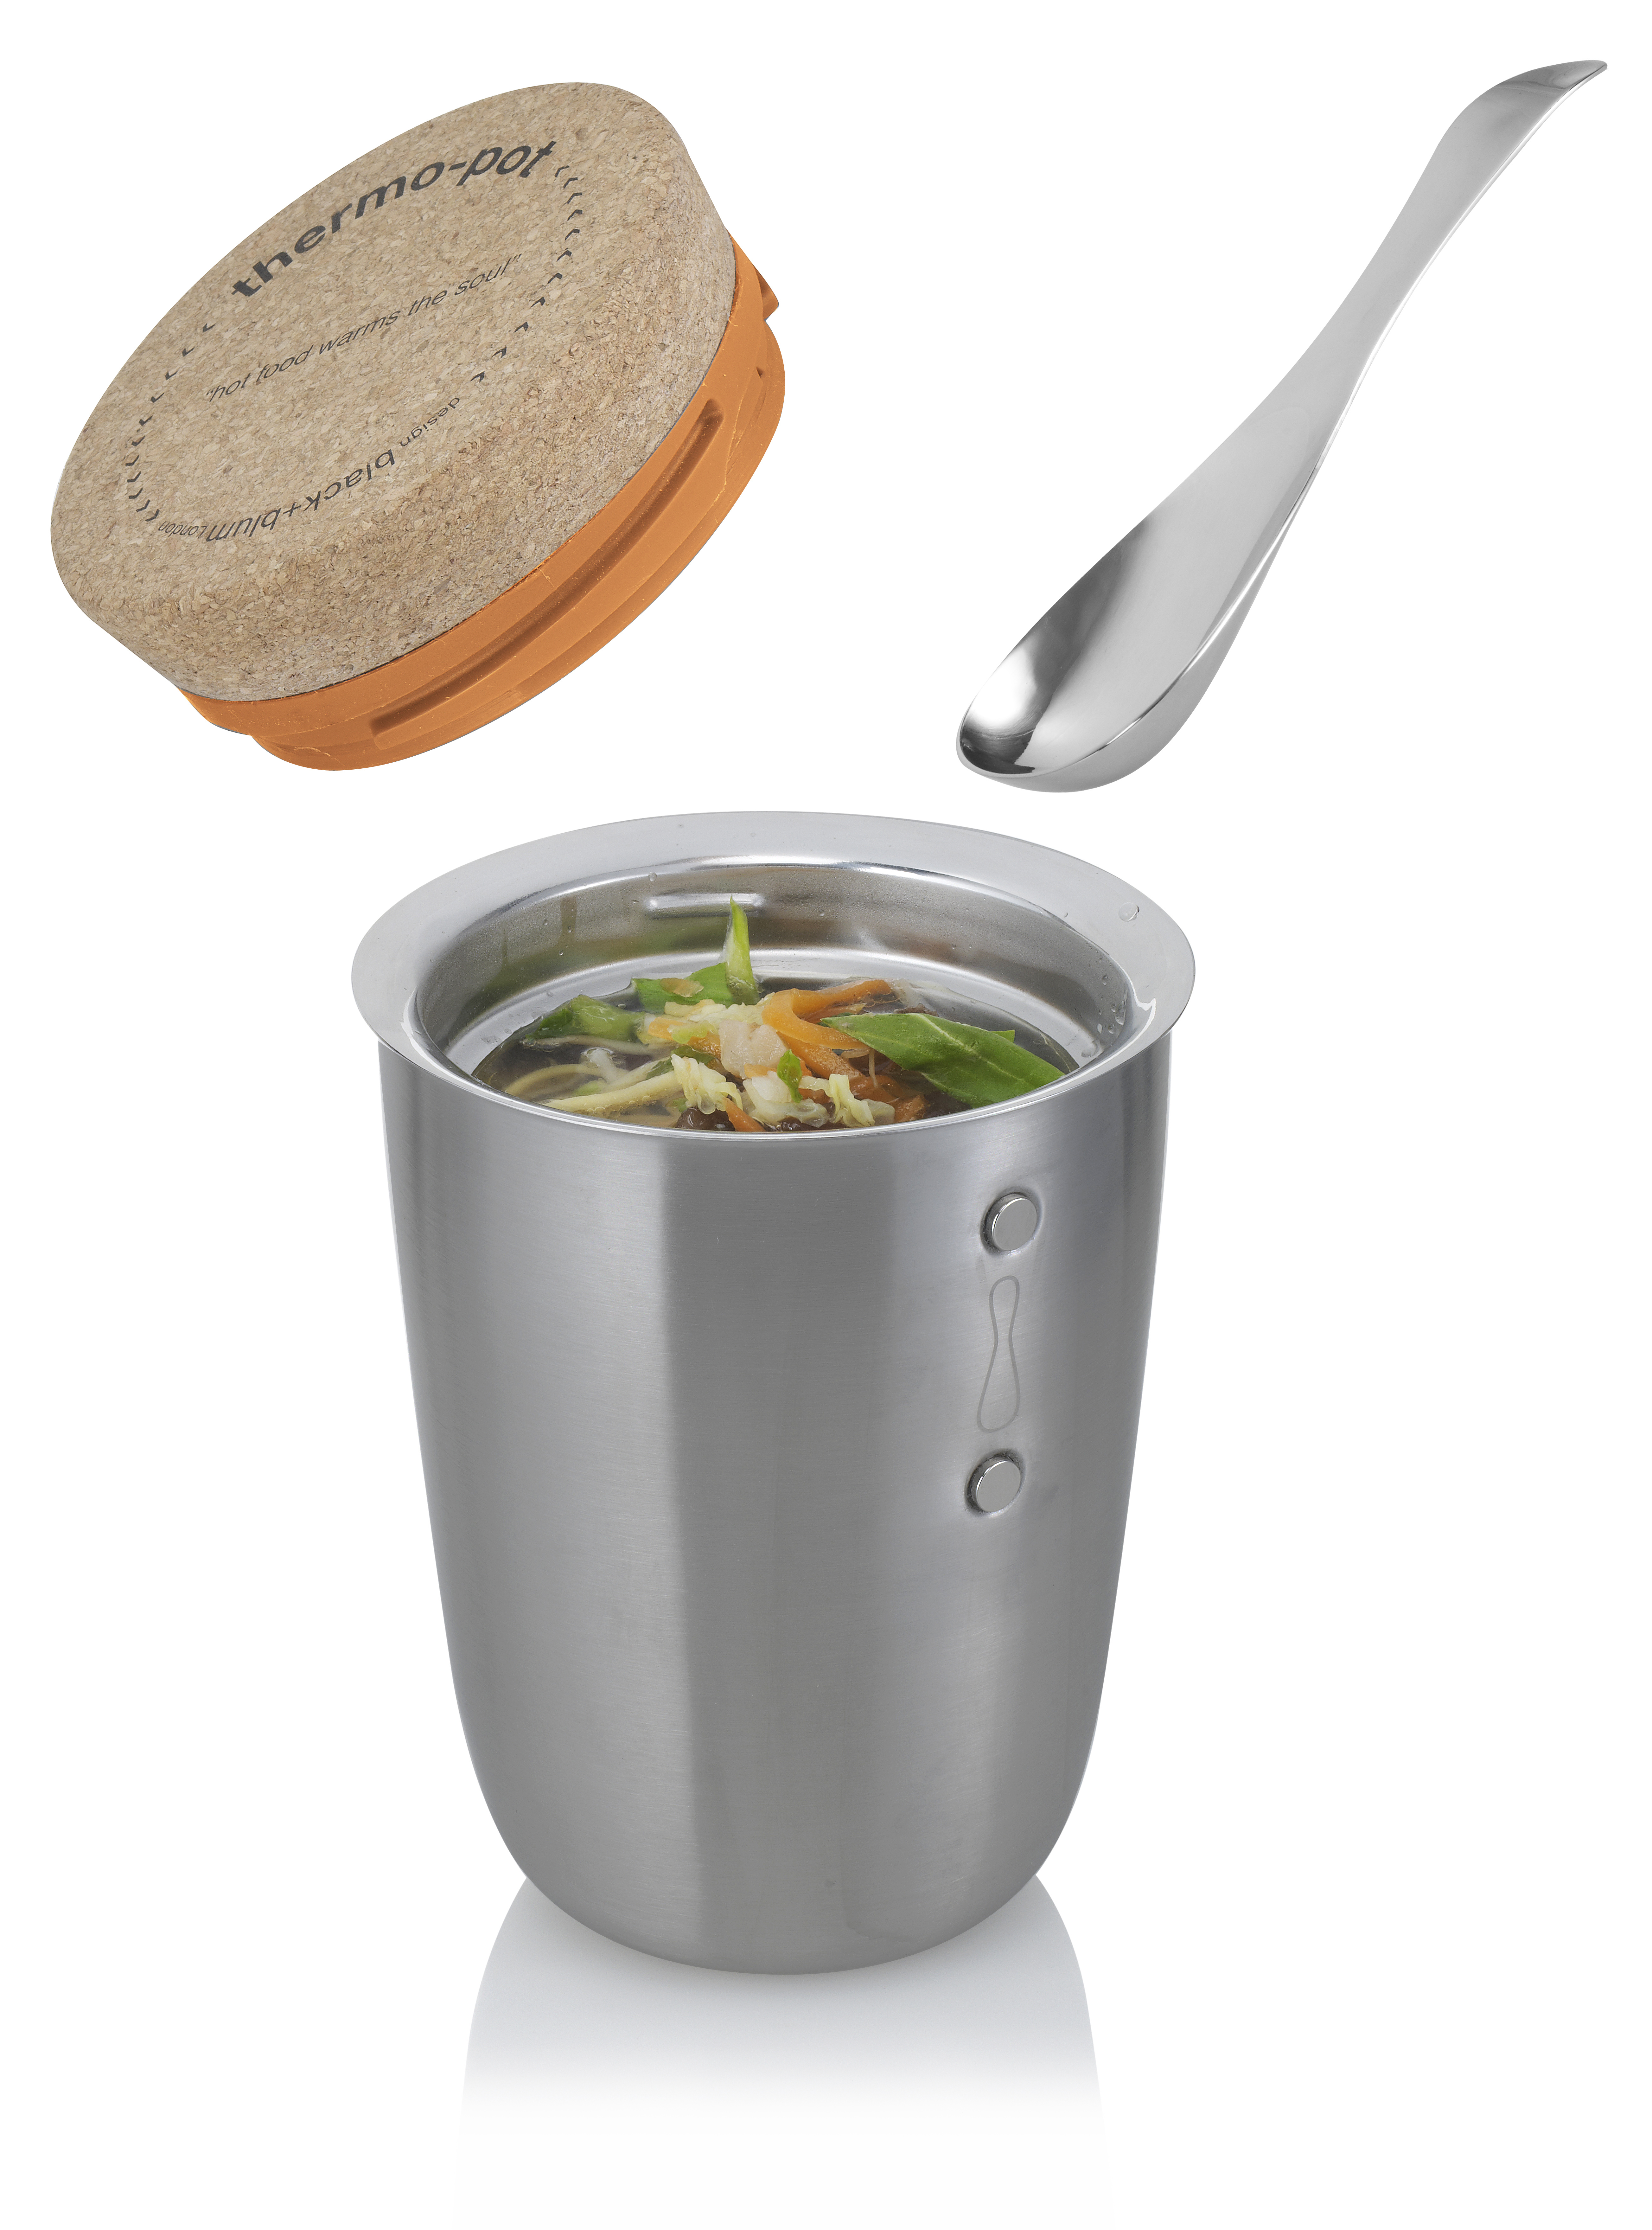 Thermo Pot with spoon